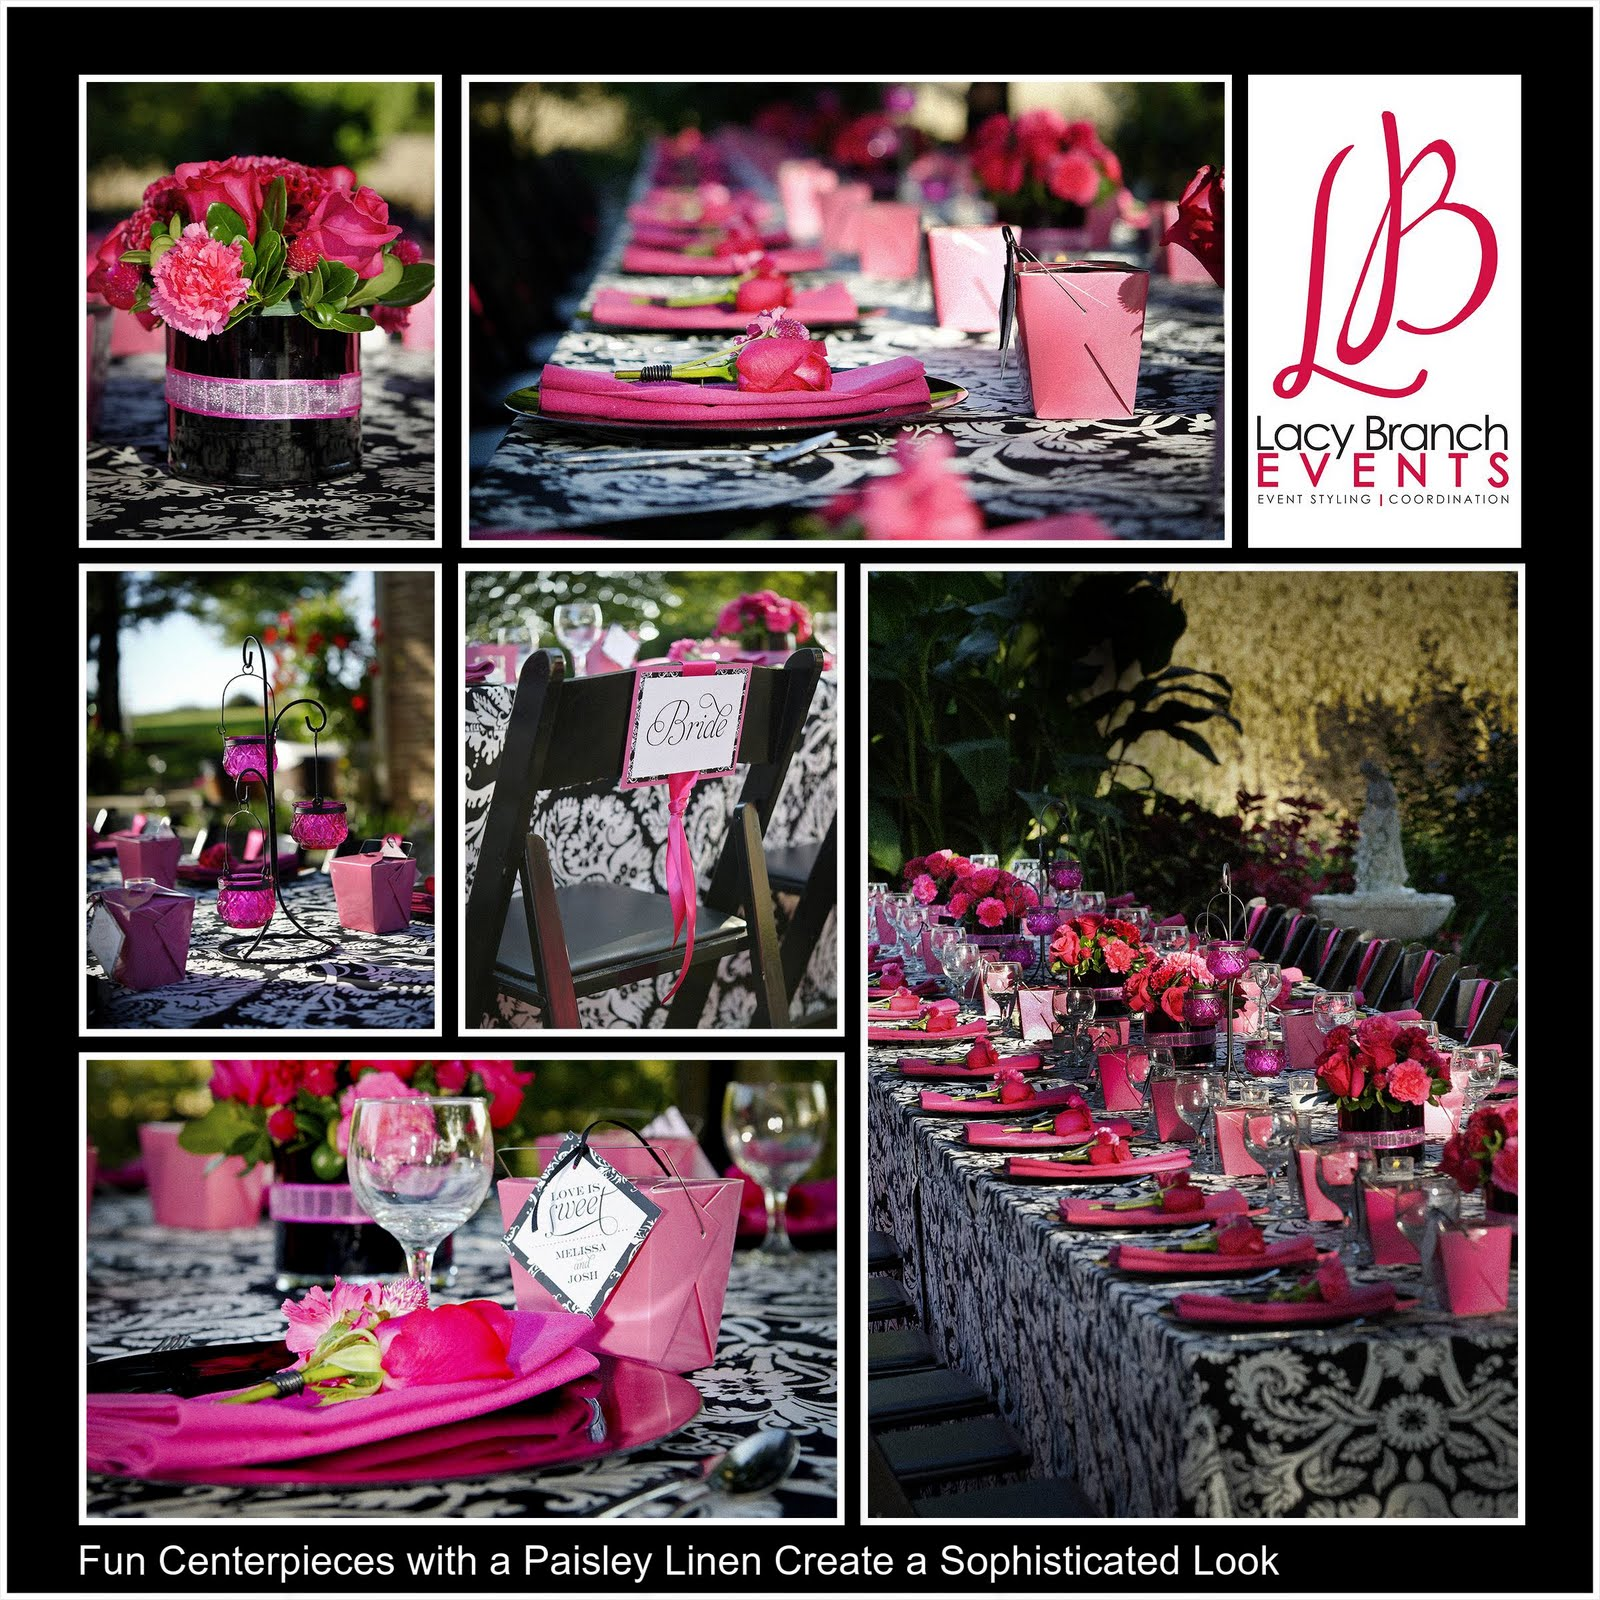 Hot Pink Wedding Centerpieces